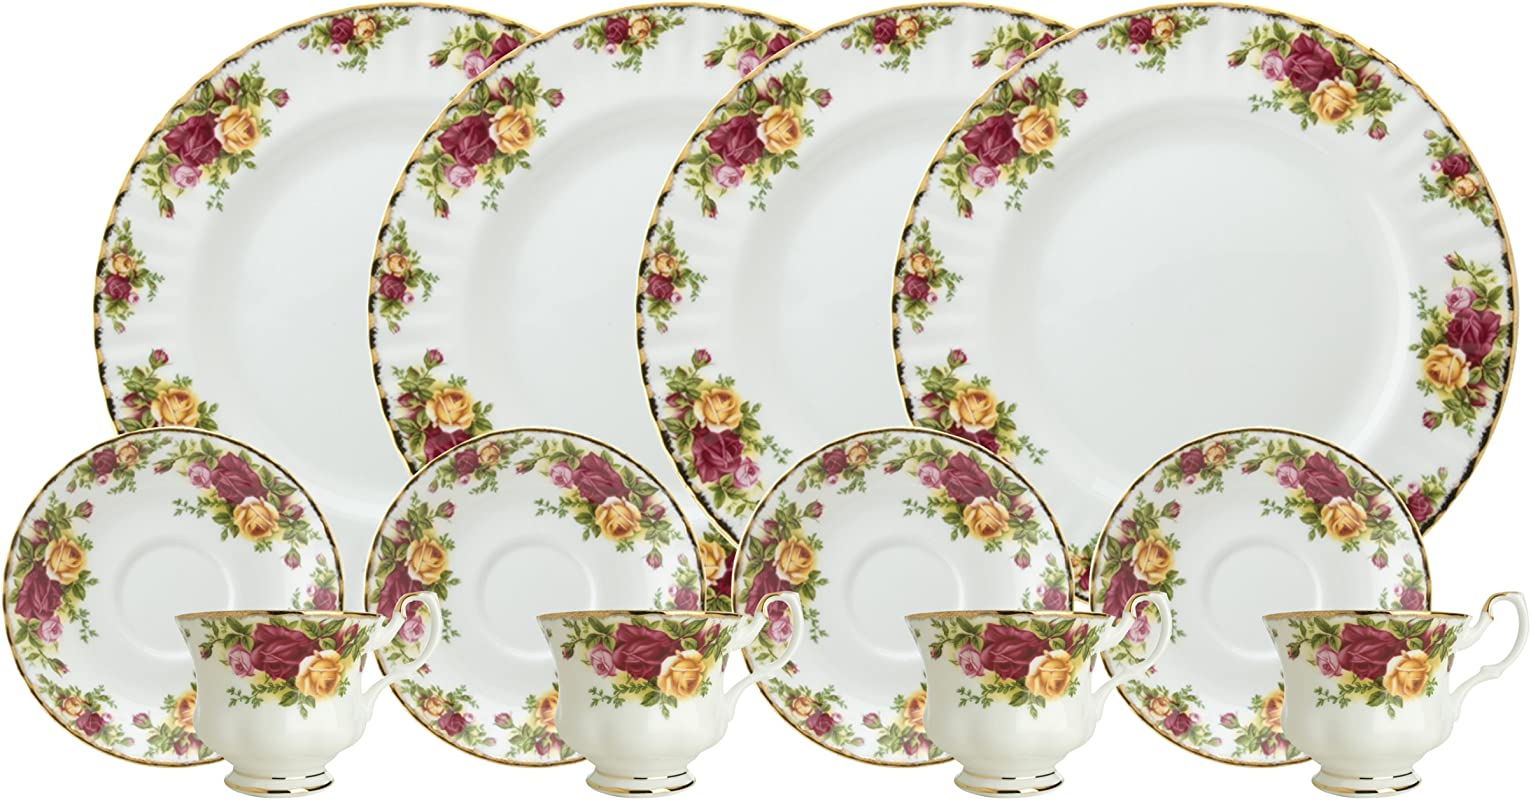 Royal Doulton Royal Albert Old Country Roses 12 Piece Set Service For 4